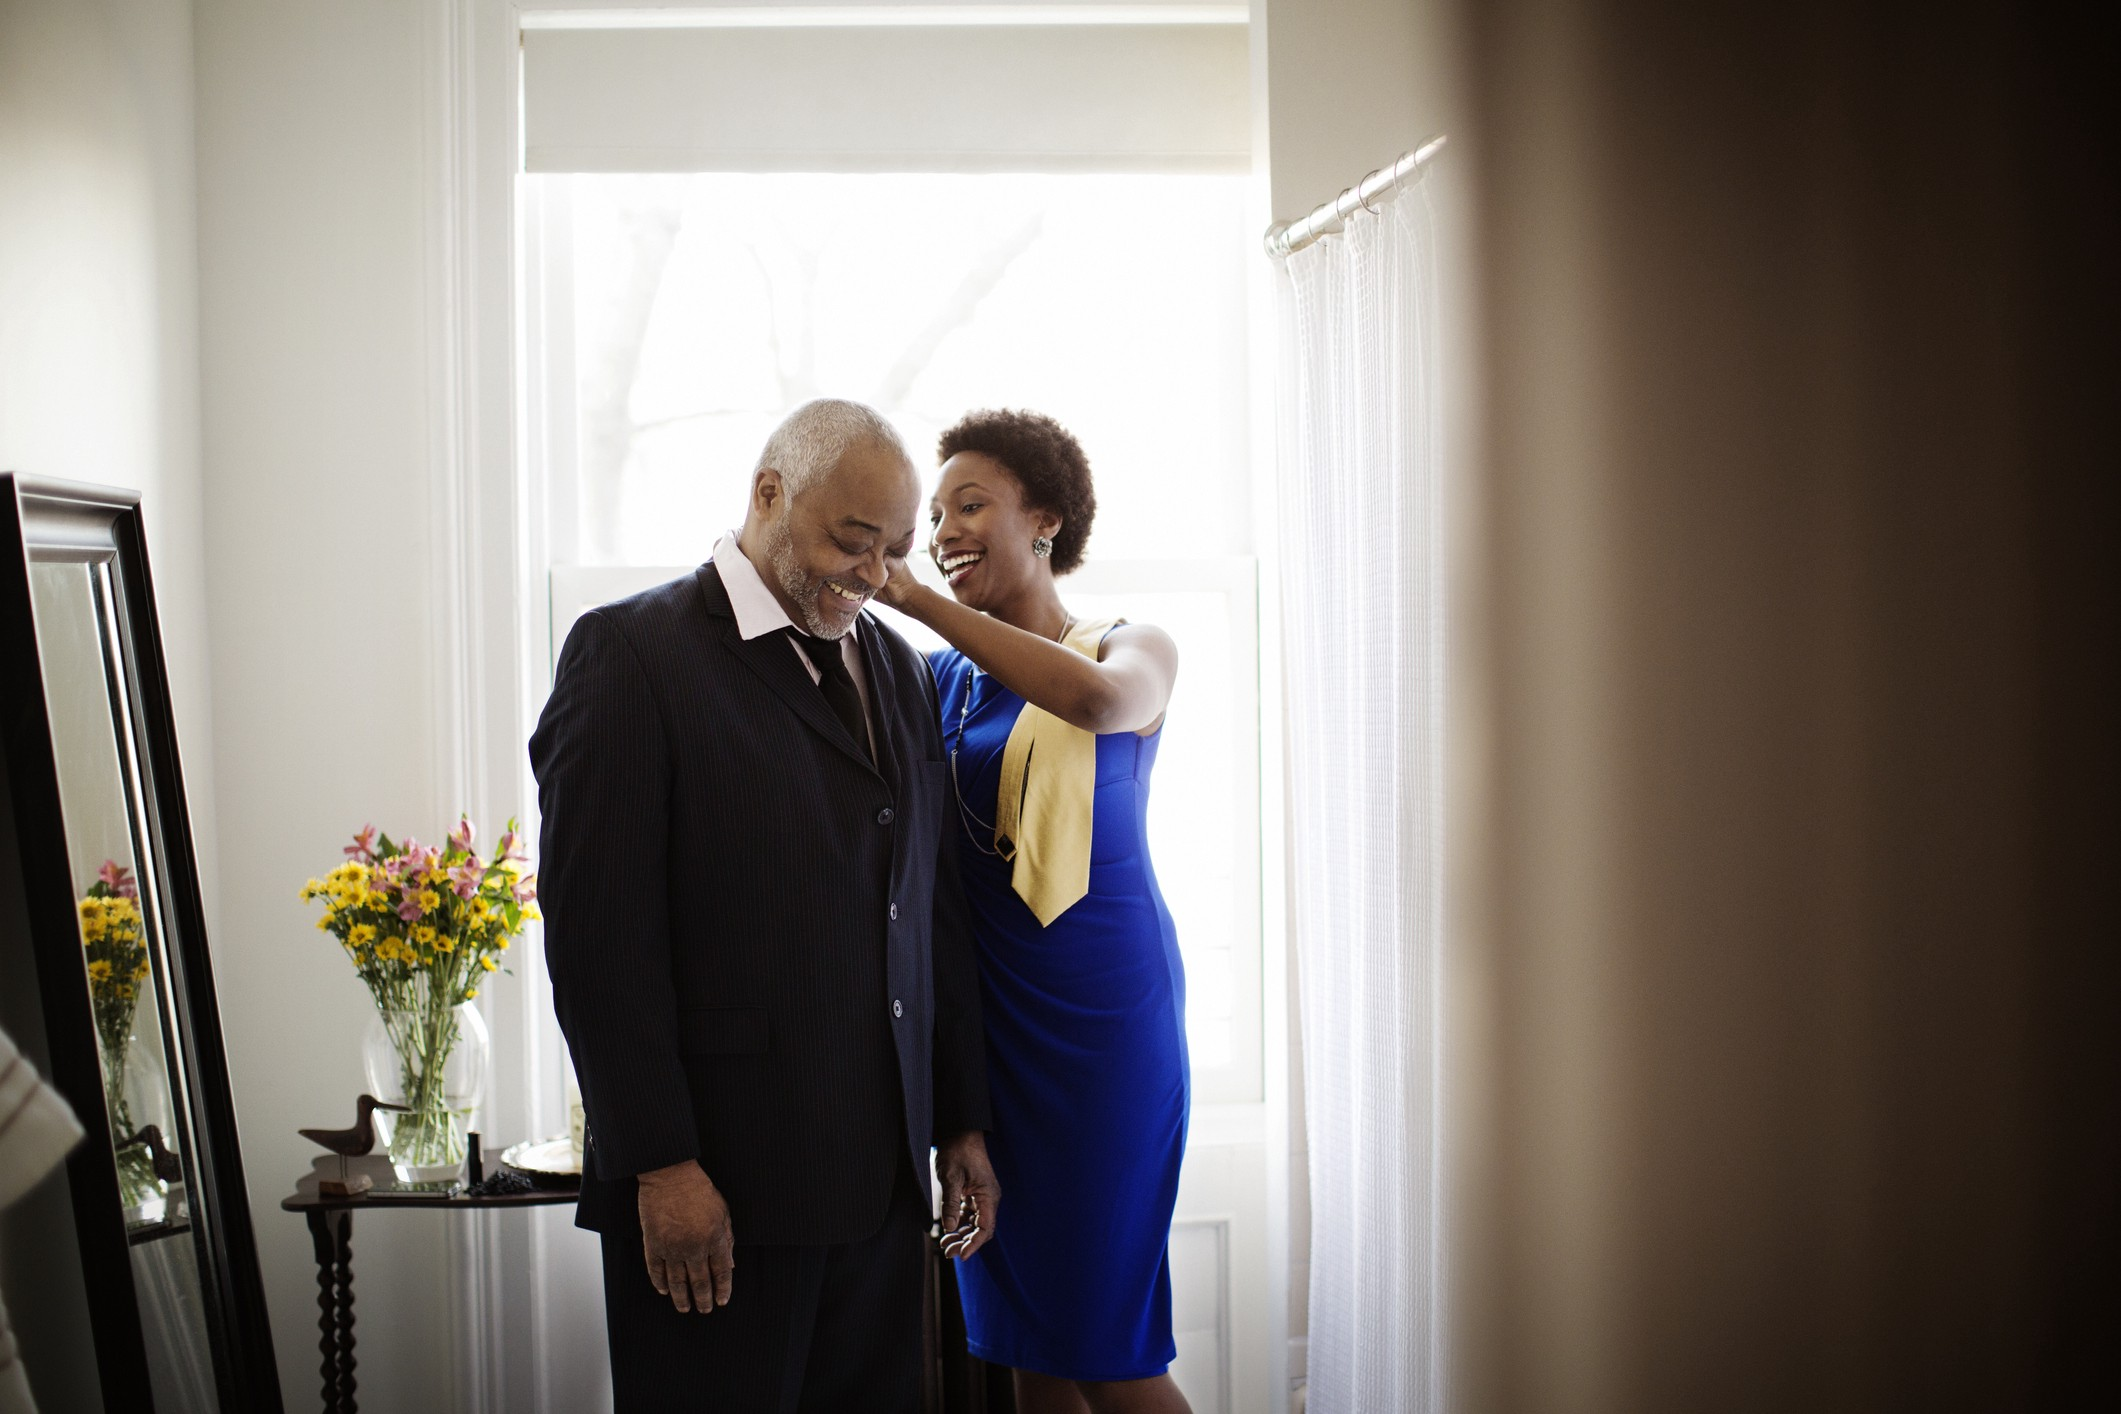 A Black woman assists her elder father with his collar as they prepare for a party.